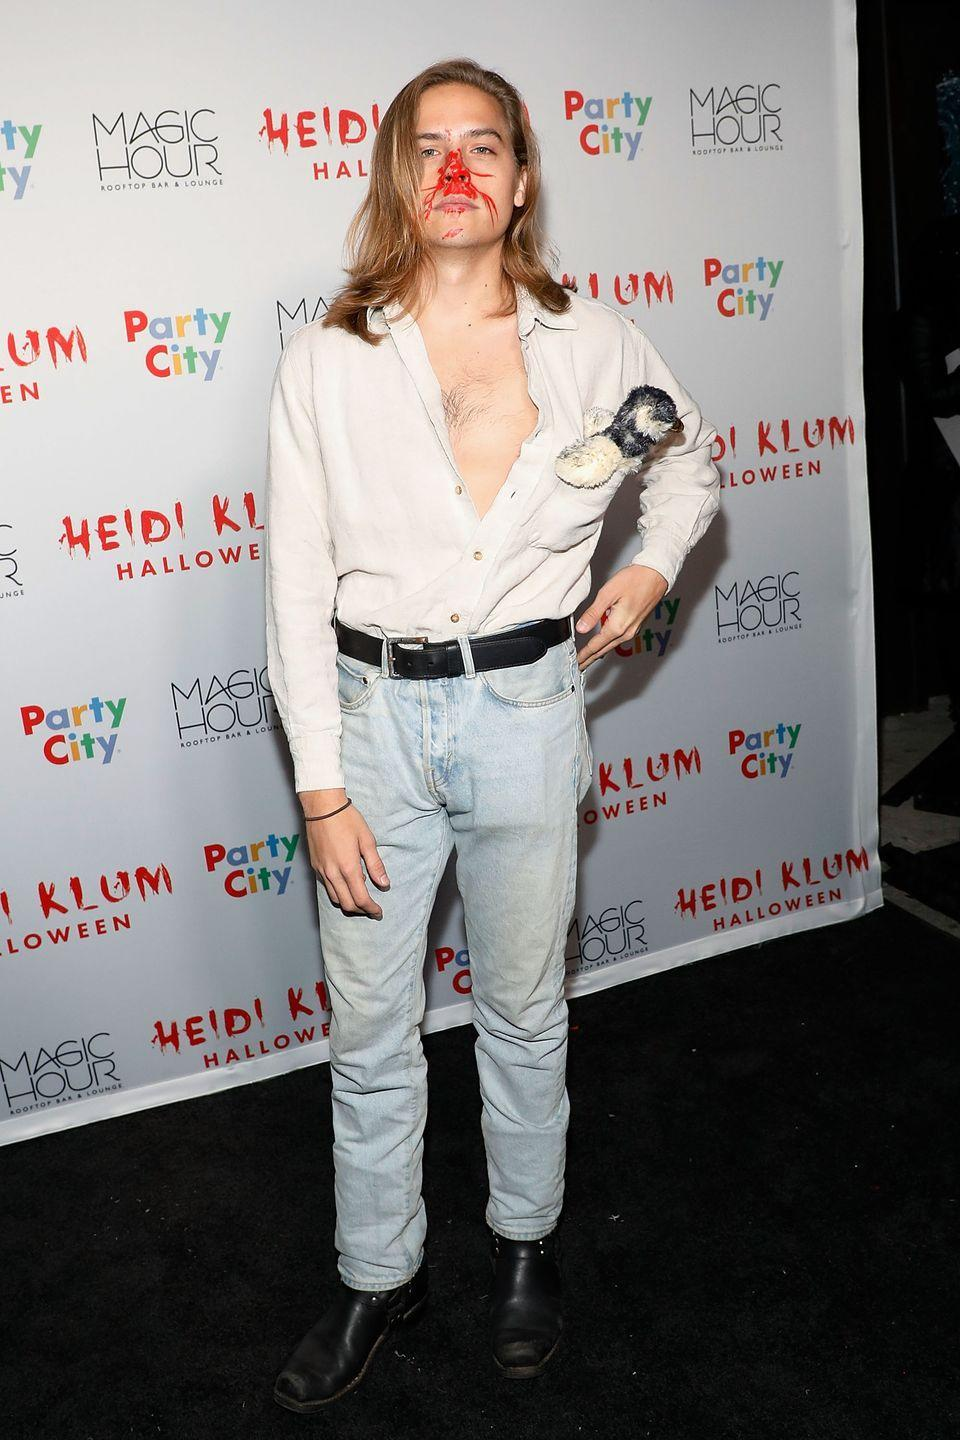 "<p>This costume is going to need an explanation. Fabio Lanzoni is an actor who has graced the cover of many a romance novel. He's pretty iconic for having windswept hair and an open shirt.</p><p>Dylan's costume is based on the aftermath of <a href=""https://www.youtube.com/watch?v=VeoT-QcYiXM"" rel=""nofollow noopener"" target=""_blank"" data-ylk=""slk:Fabio getting hit in face"" class=""link rapid-noclick-resp"">Fabio getting hit in face</a> by a bird as he was riding a roller coster.</p>"